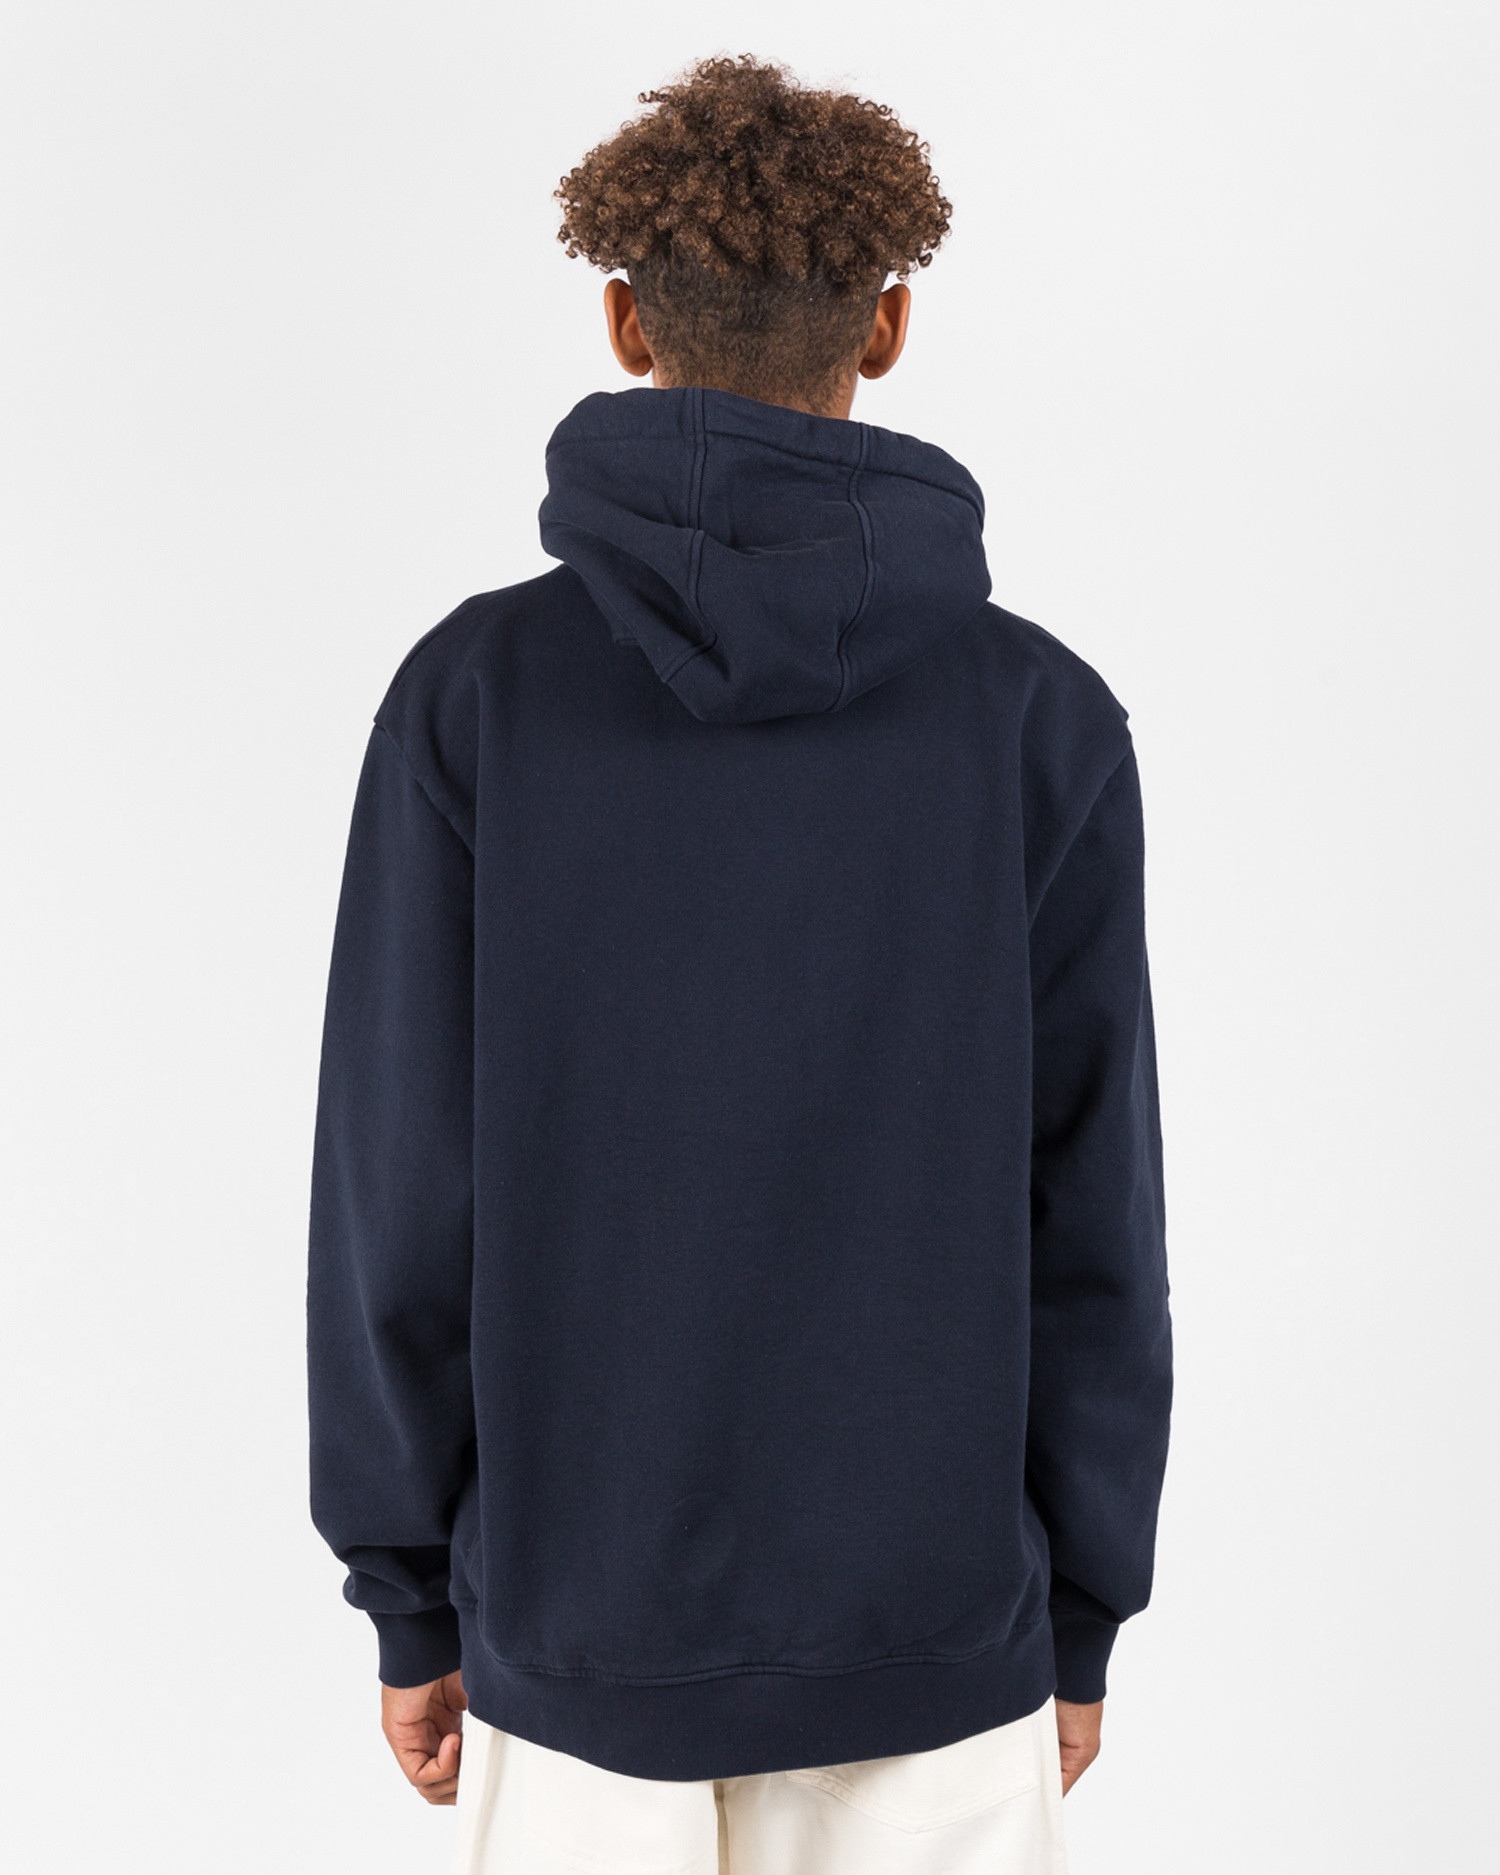 Parra Fonts Are Us Hooded Sweatshirt Navy